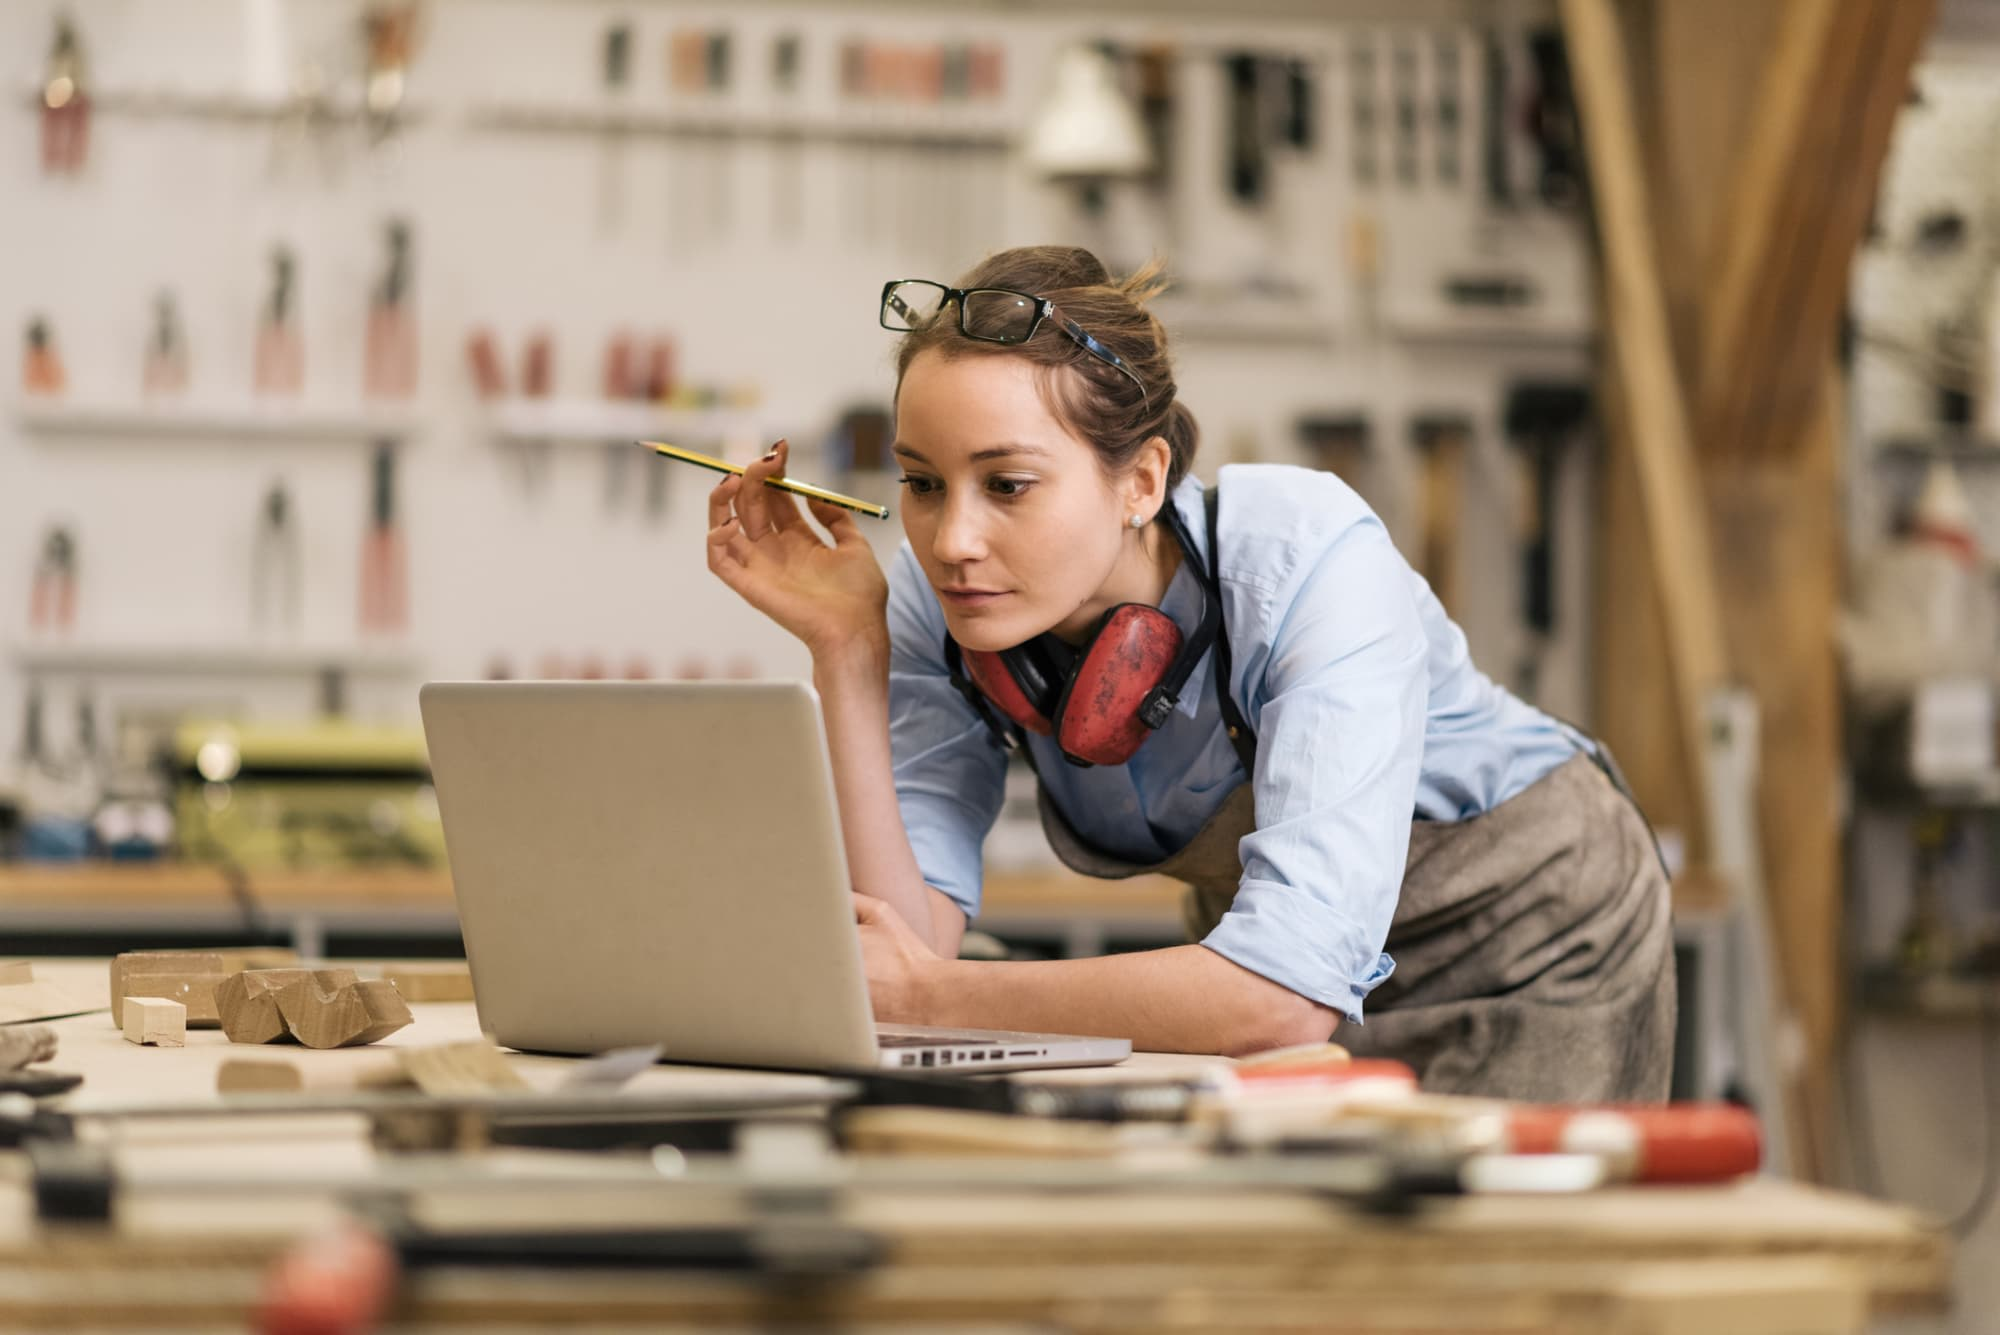 Vocational Training A Guide to Non-Degree Education tumbnail